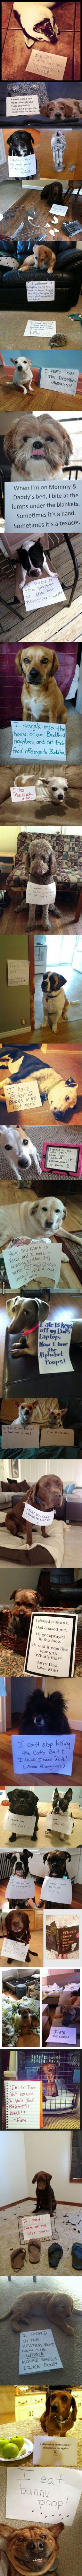 "Dog shaming is hilarious"": Shaming Compilation, Dog Shame, Dog Shaming, Funny Dogs, Funny Stuff, Puppy, So Funny"